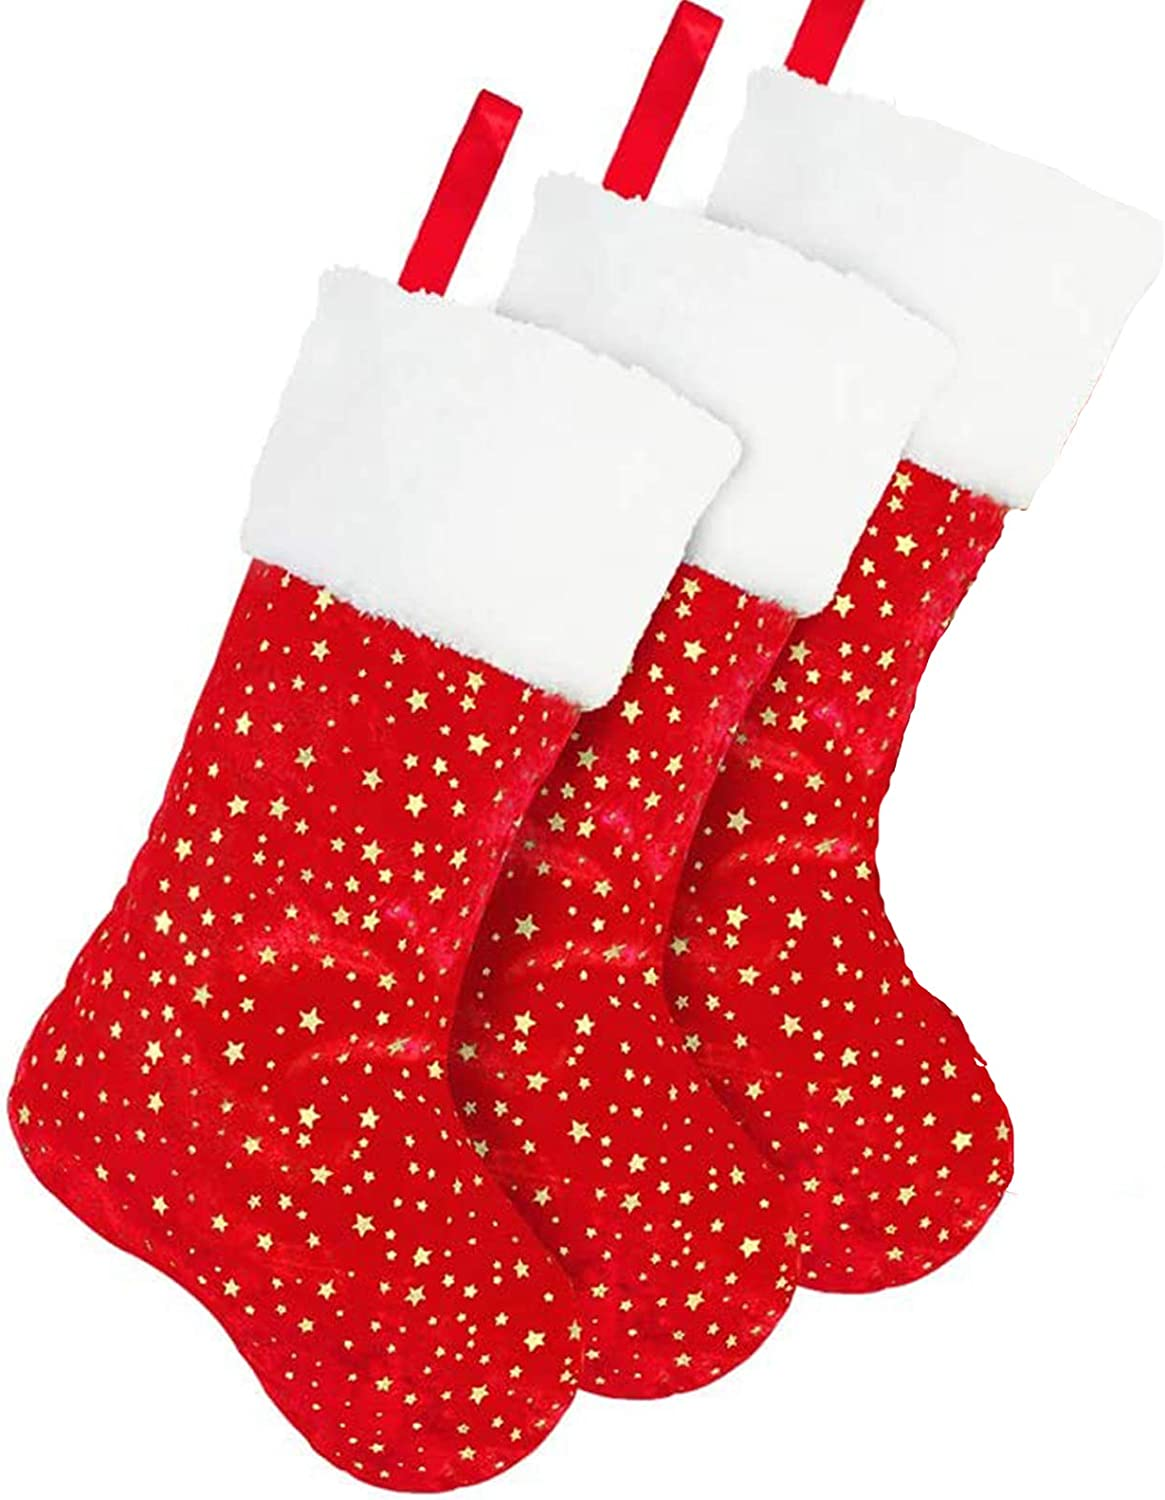 DegGod 3 Pack Red Christmas Stockings Set, 18 inches Golden Star Xmas Stocking with White Plush Trim for Farmhouse Rustic Xmas Fireplace Hanging Decoration (Red + Gold)